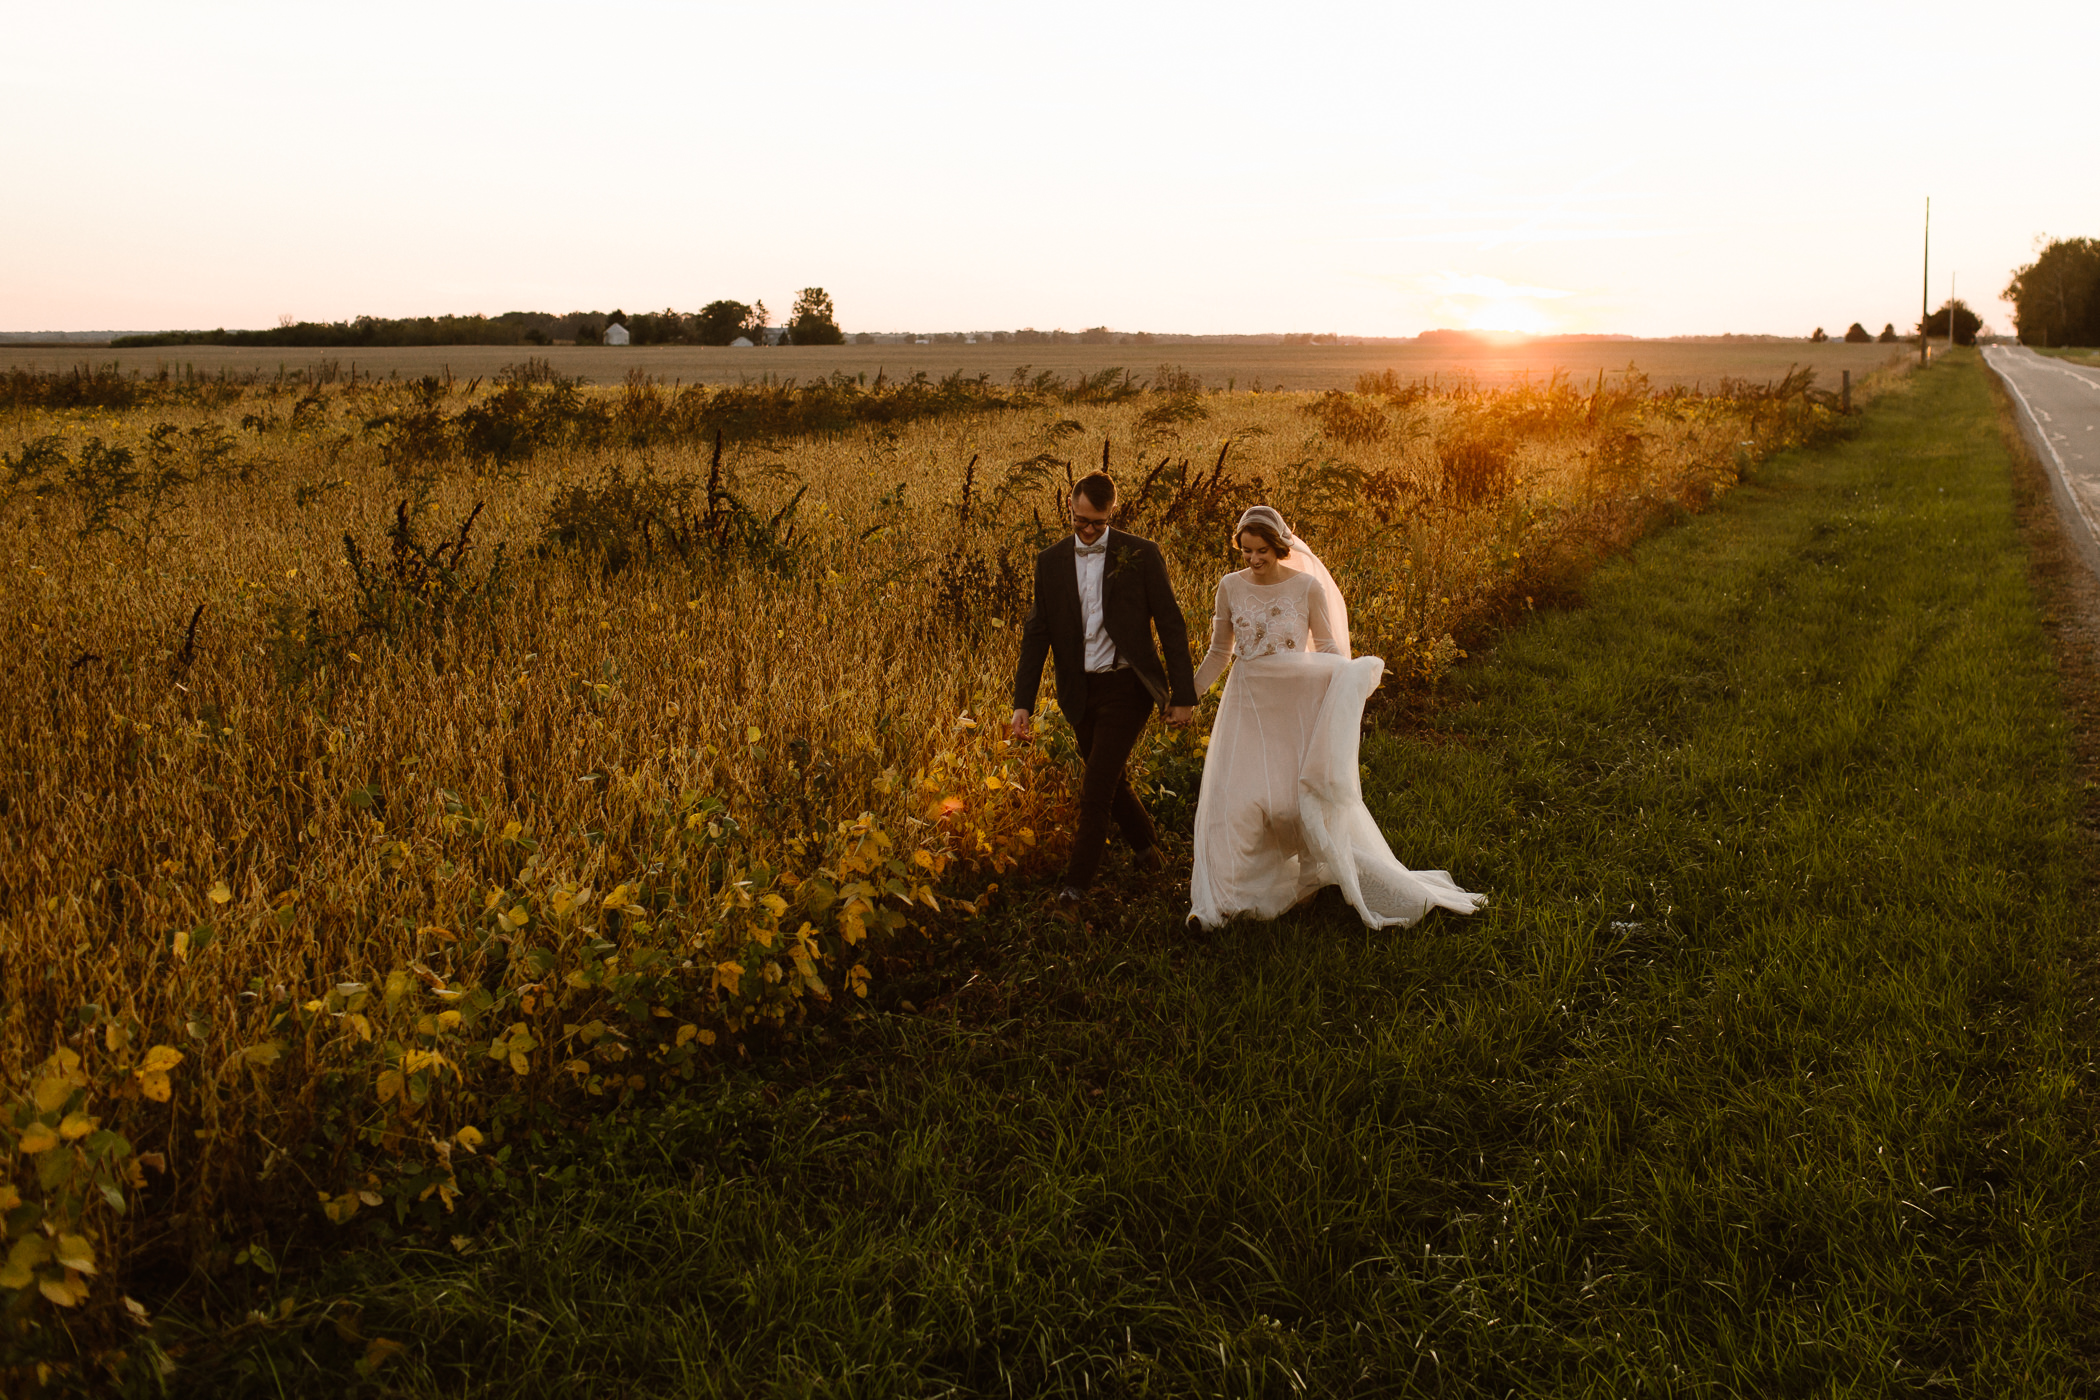 eastlyn and joshua dayton ohio wedding photographers vintage autumn wedding-206.jpg